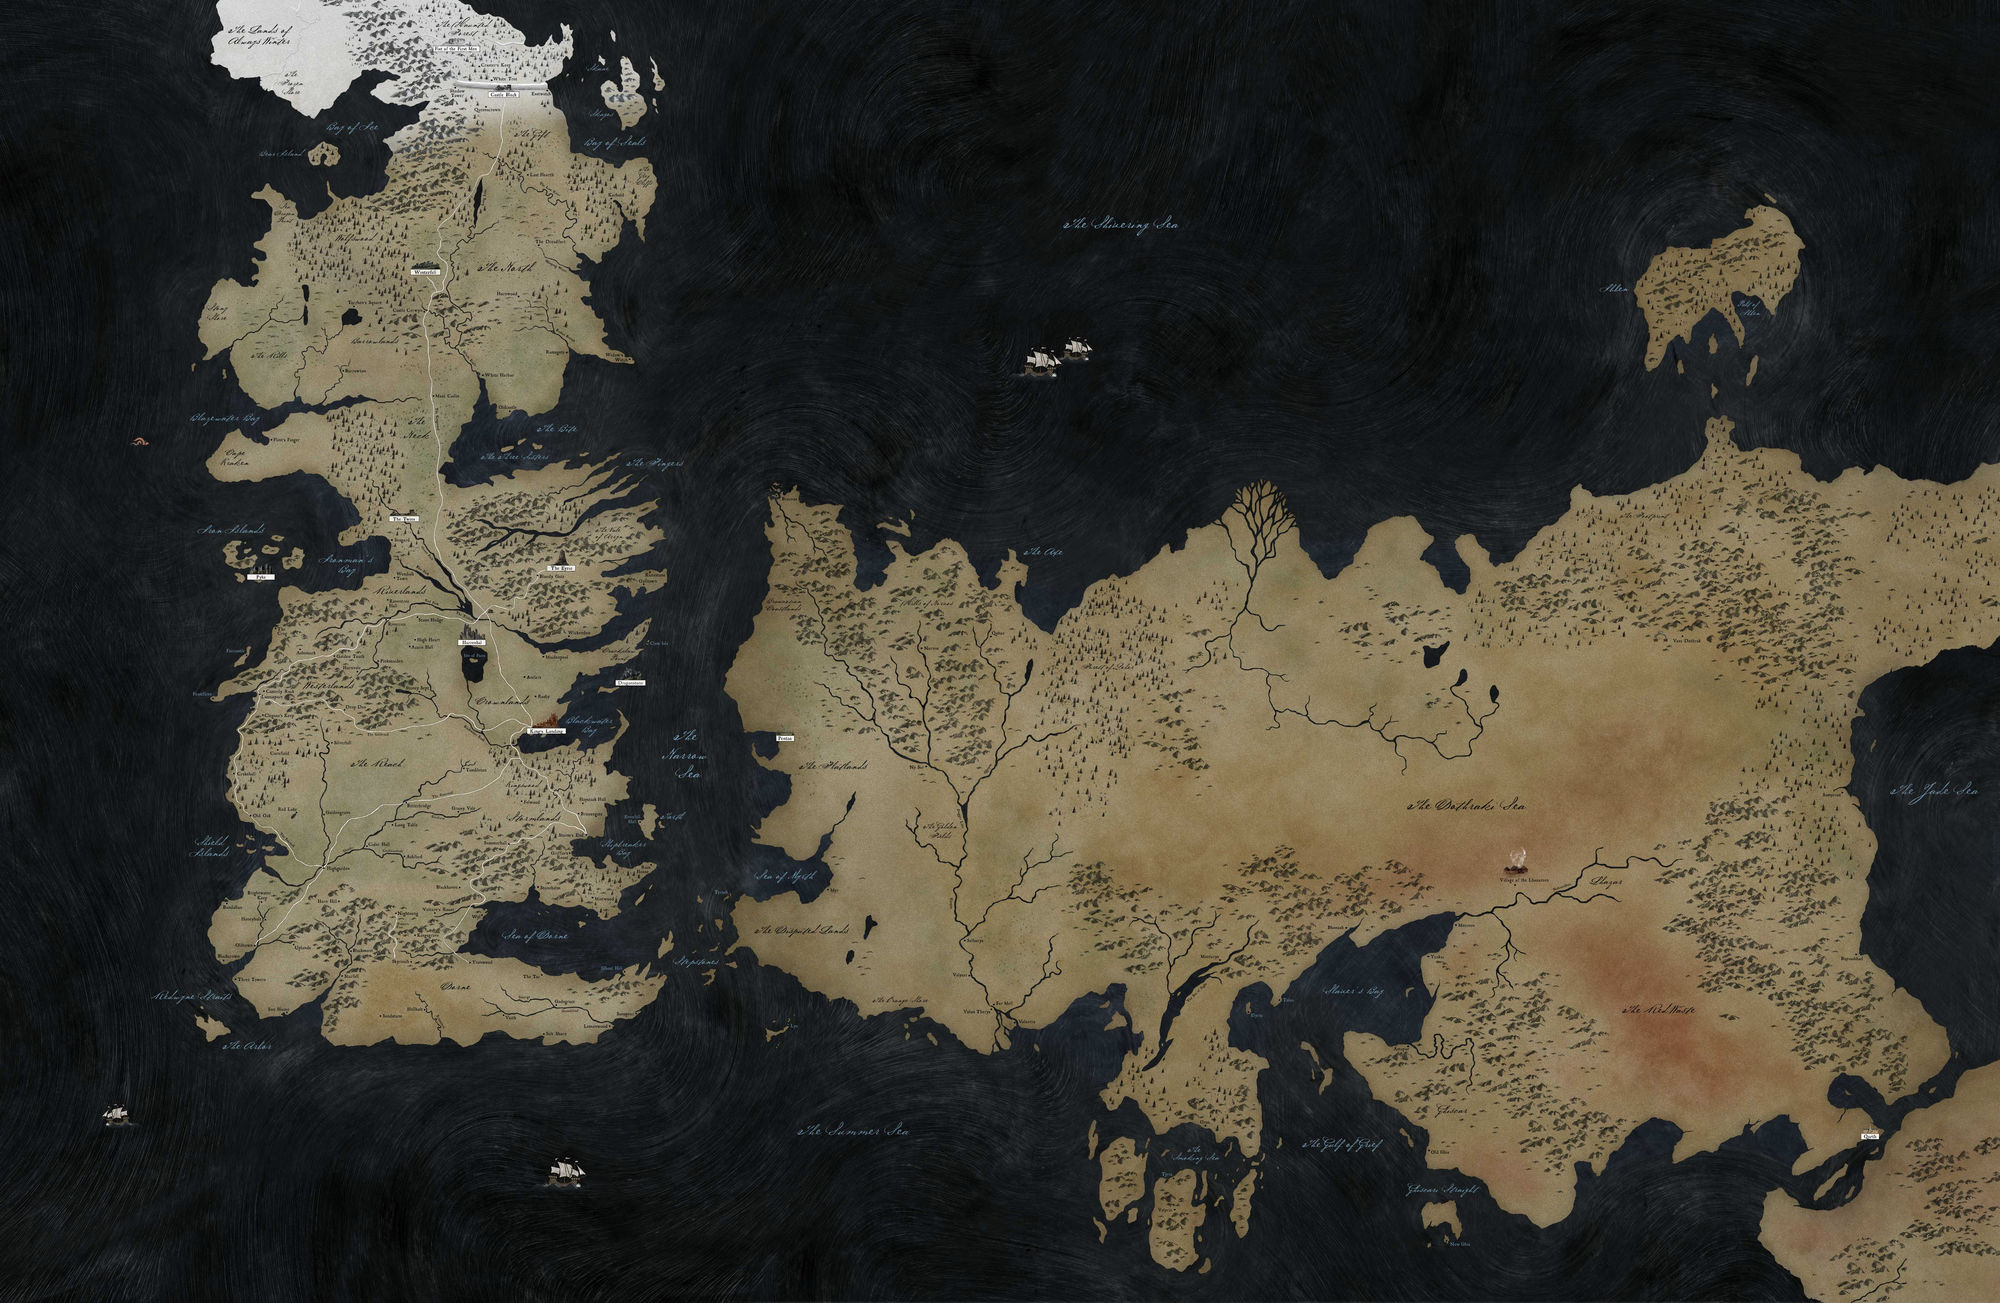 Game Of Thrones Map Of The World Known world | Game of Thrones Wiki | Fandom